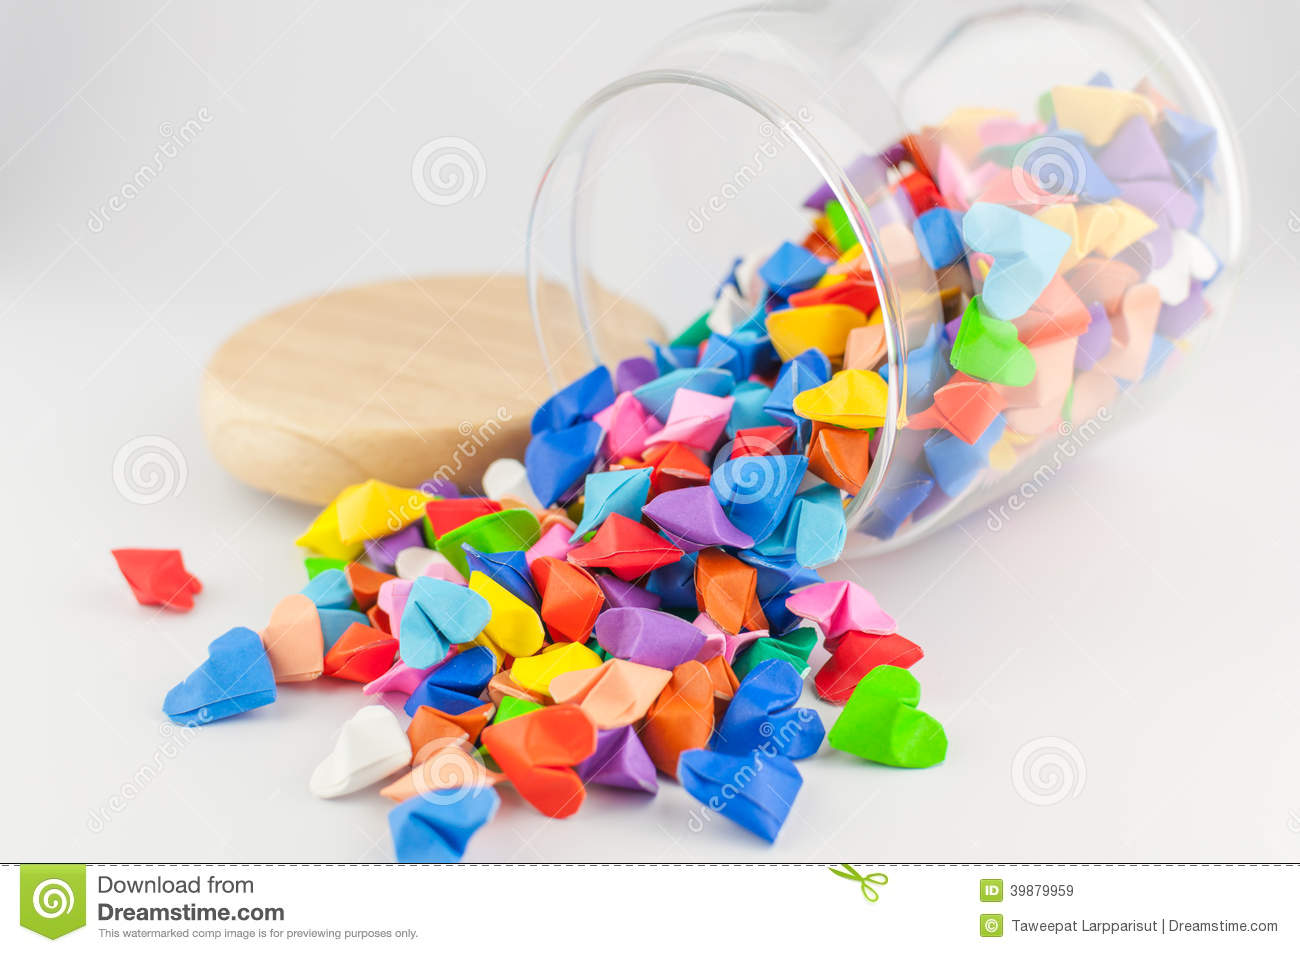 Colorful Origami Birds In The Clear Glass Jar Stock Photo - Image ... | 953x1300